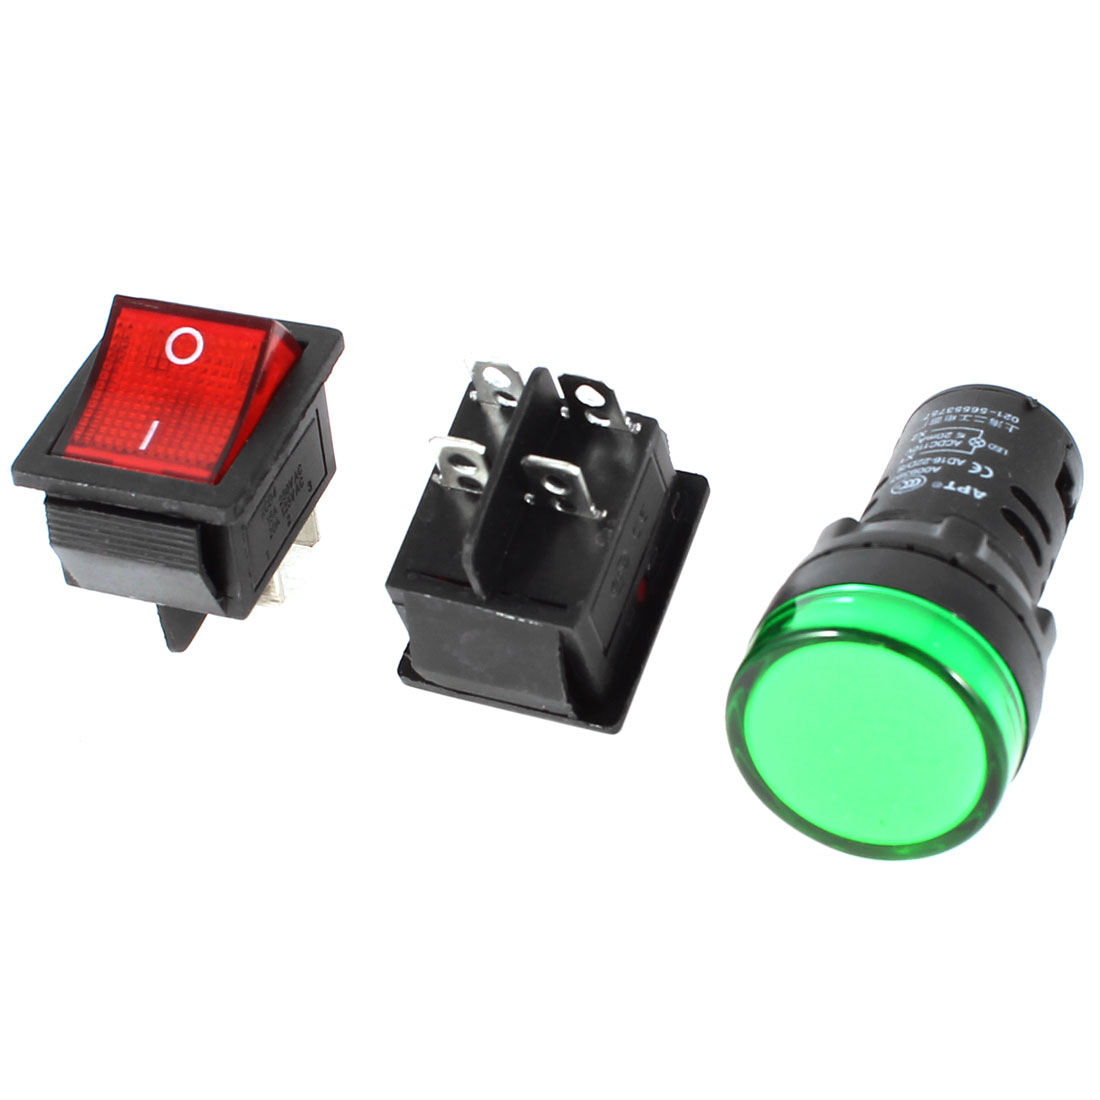 2x KCD4 DPST Red Light Rocker Switch + 1x AD16-22D/S Green Pilot LED Lamp AC 110V